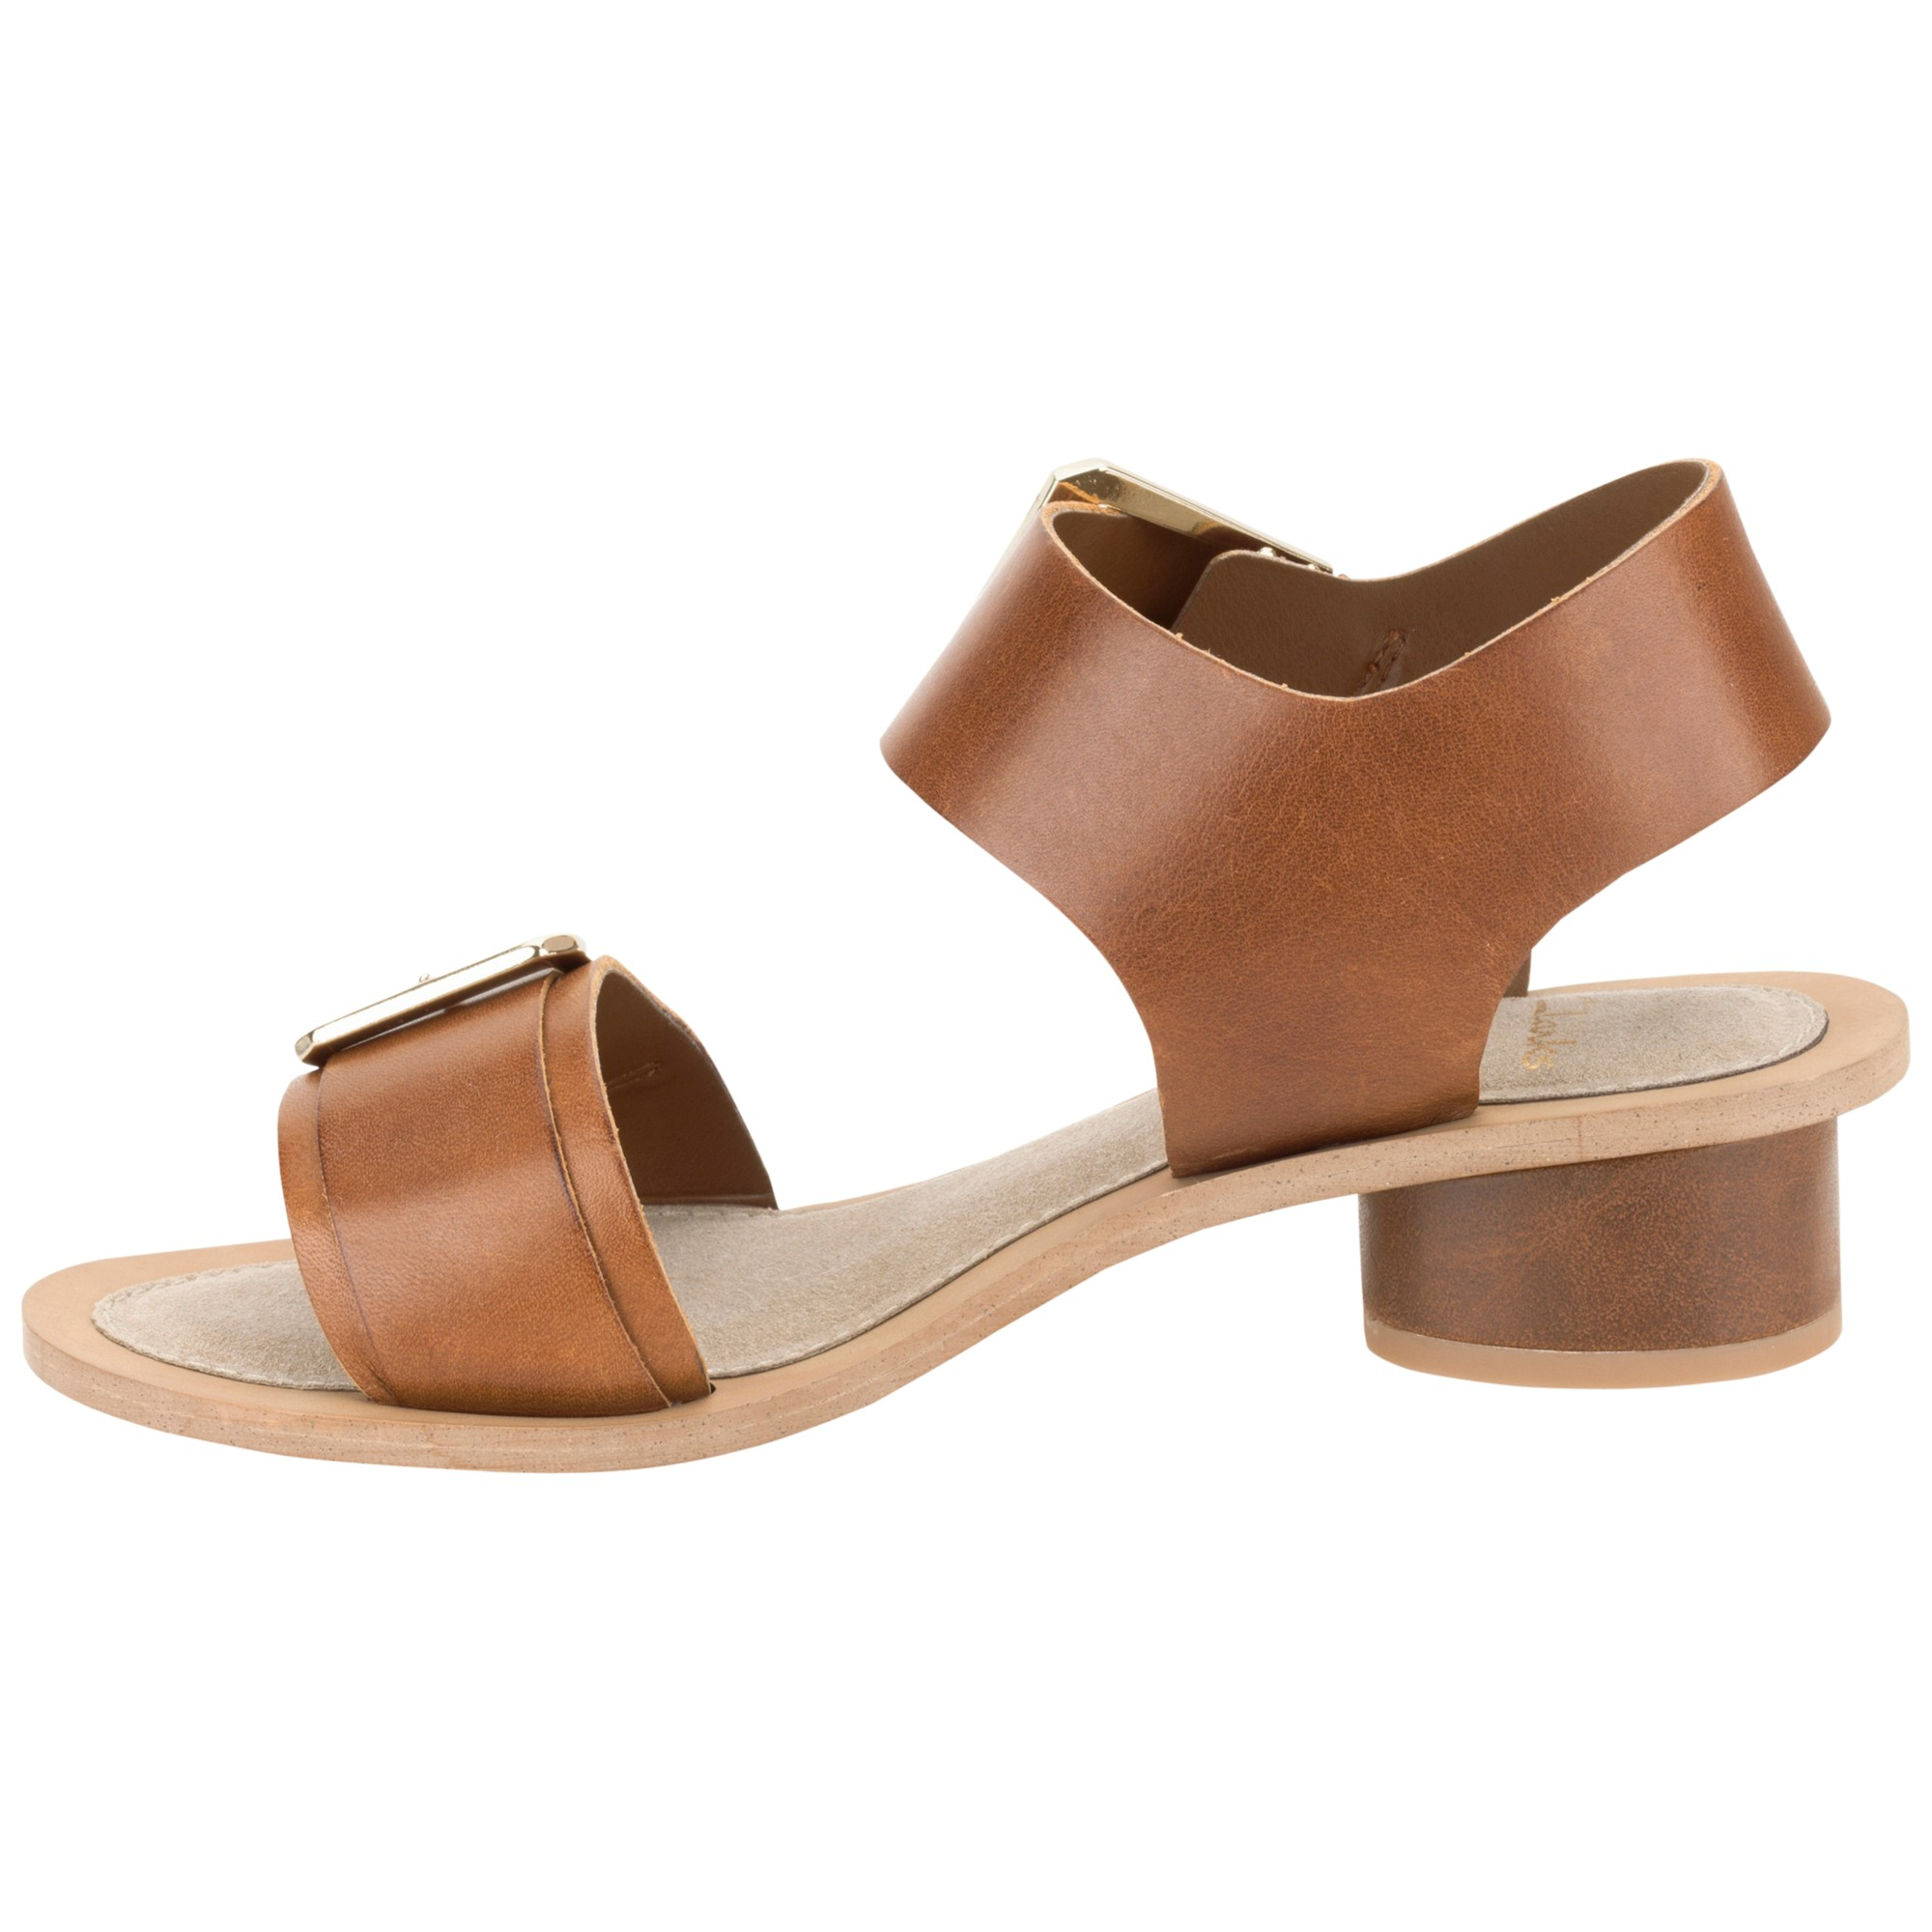 d1b1428e54951 Clarks Sandcastle Art Leather Sandals in Brown - Lyst